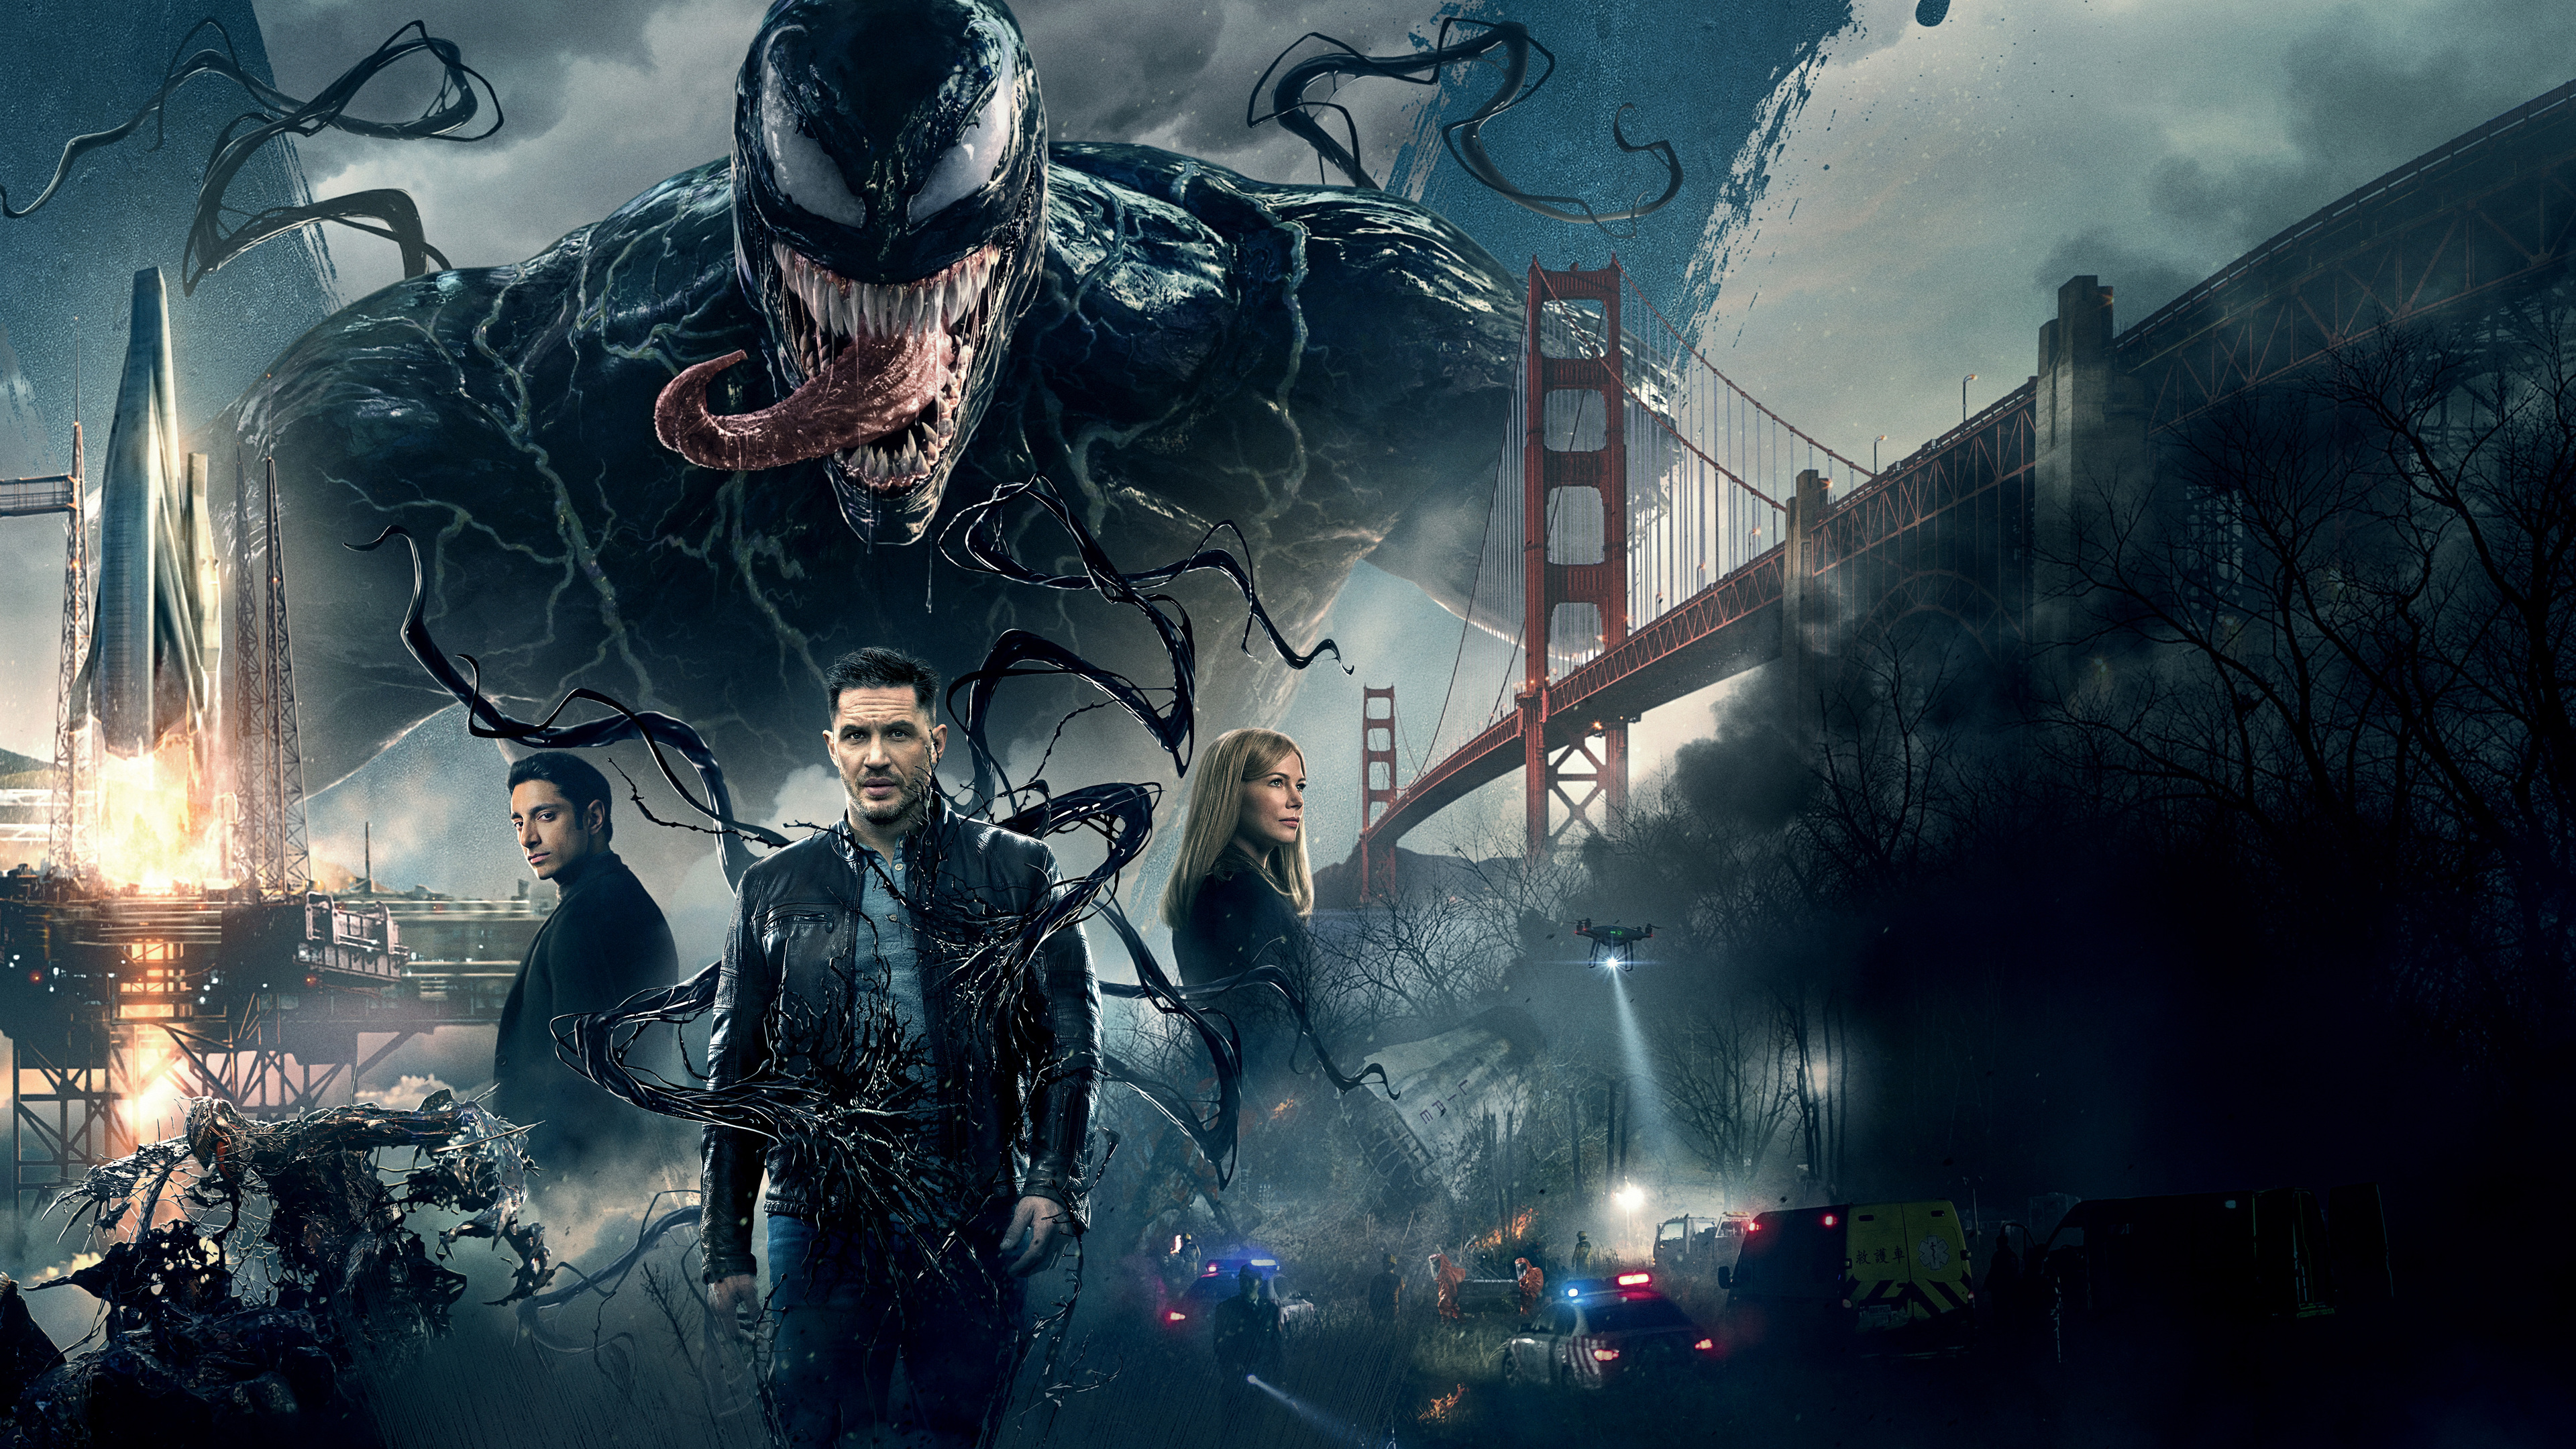 venom movie 2018 8k 1537644178 - Venom Movie 2018 8k - Venom wallpapers, venom movie wallpapers, tom hardy wallpapers, movies wallpapers, hd-wallpapers, 8k wallpapers, 5k wallpapers, 4k-wallpapers, 2018-movies-wallpapers